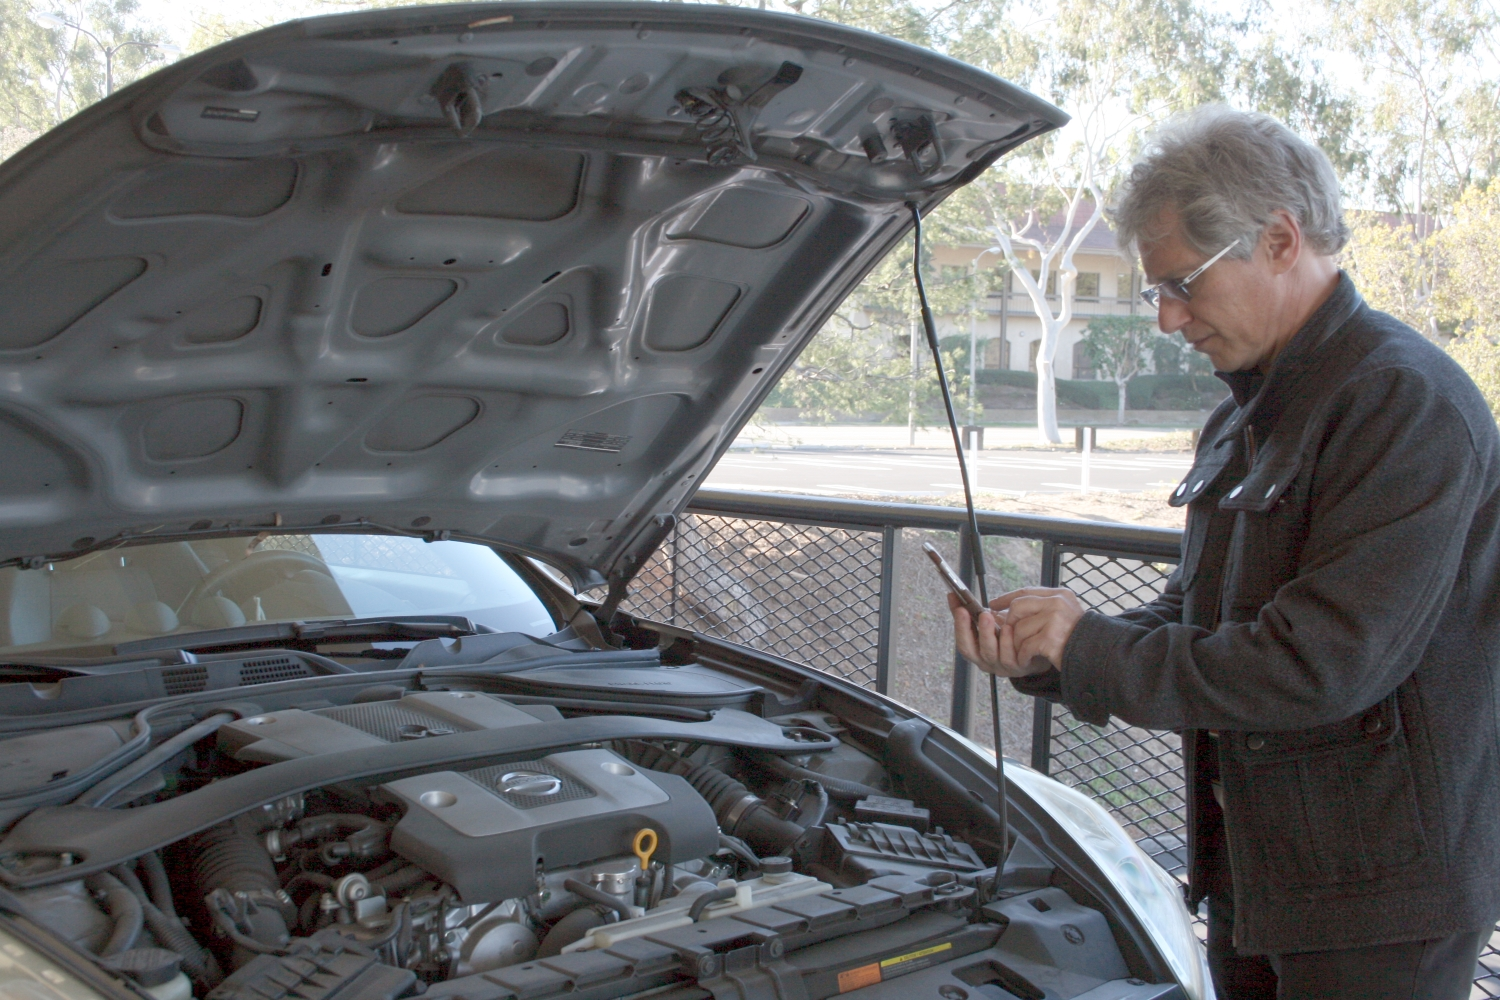 Take the stress out of auto repairs with Openbay